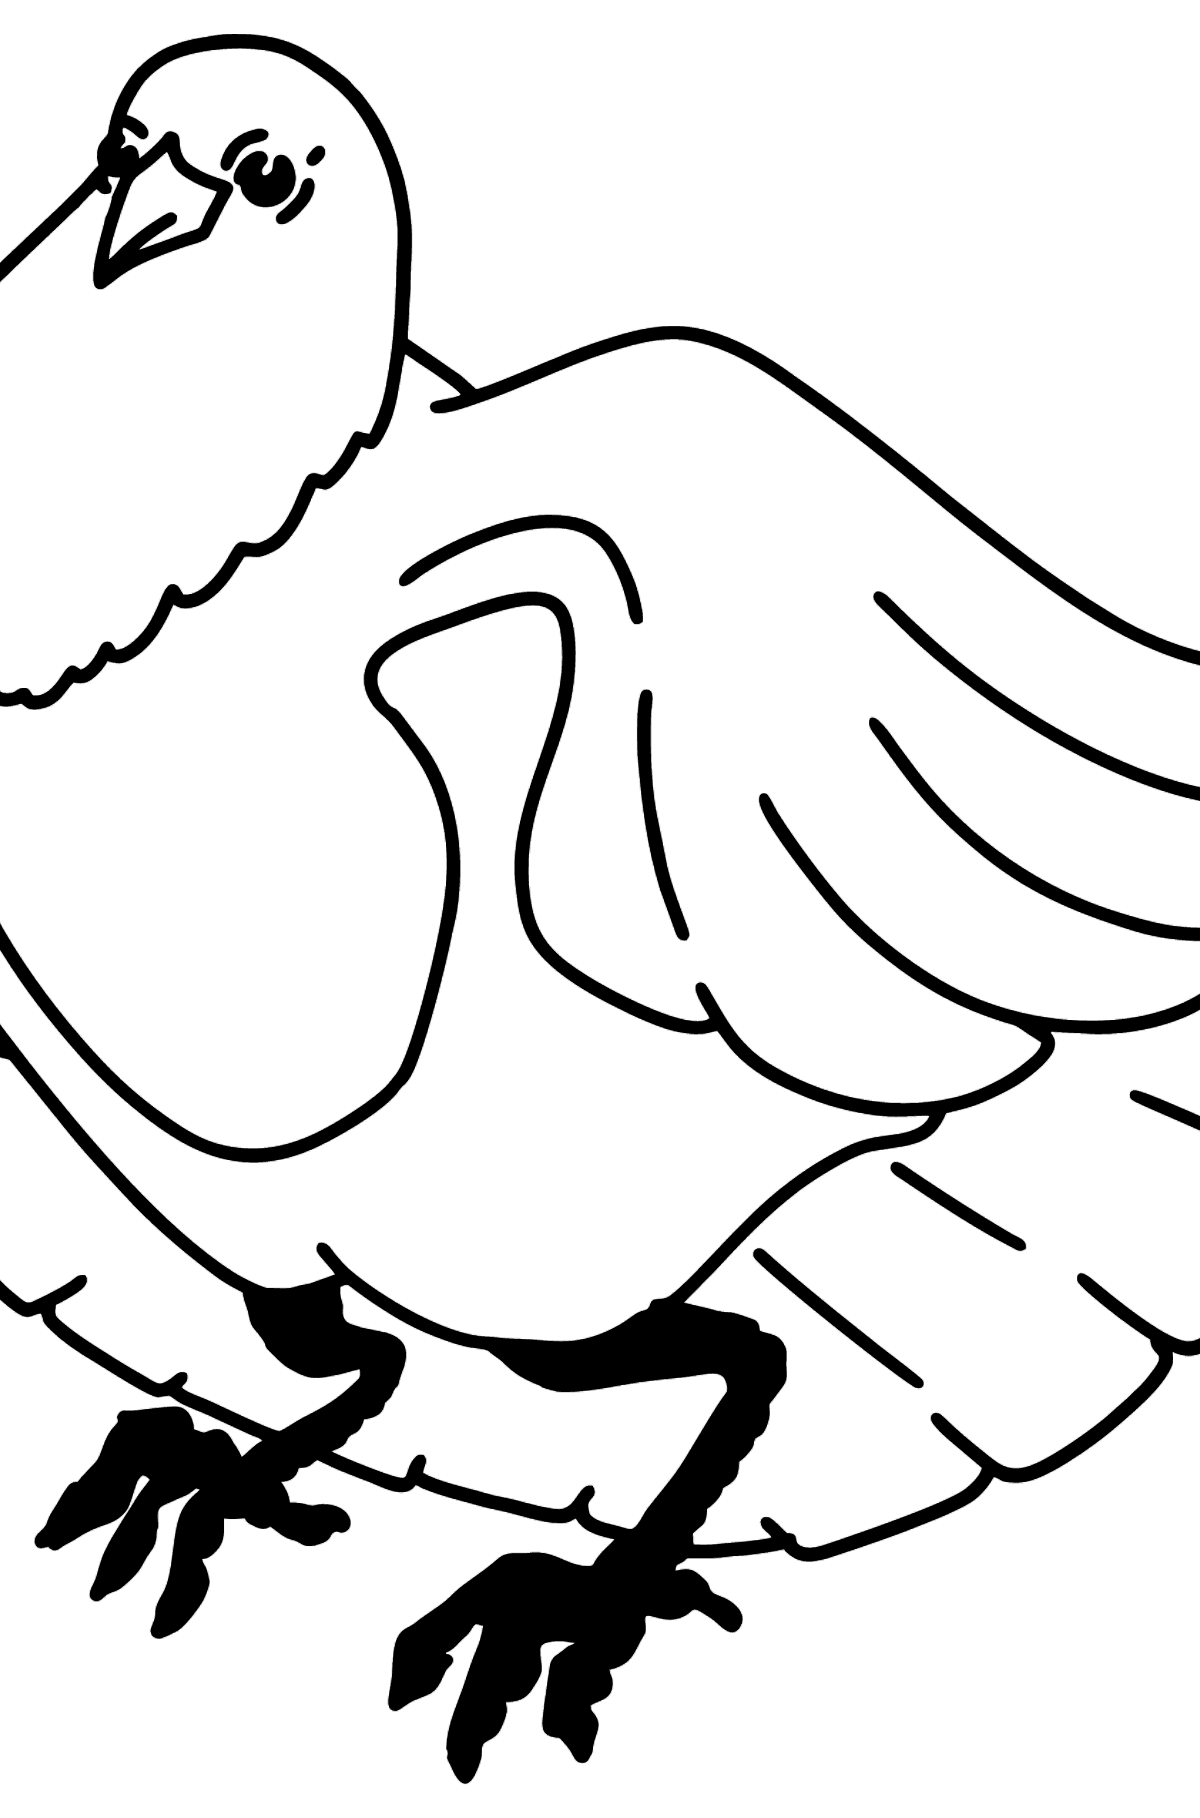 Dove coloring page - Coloring Pages for Kids